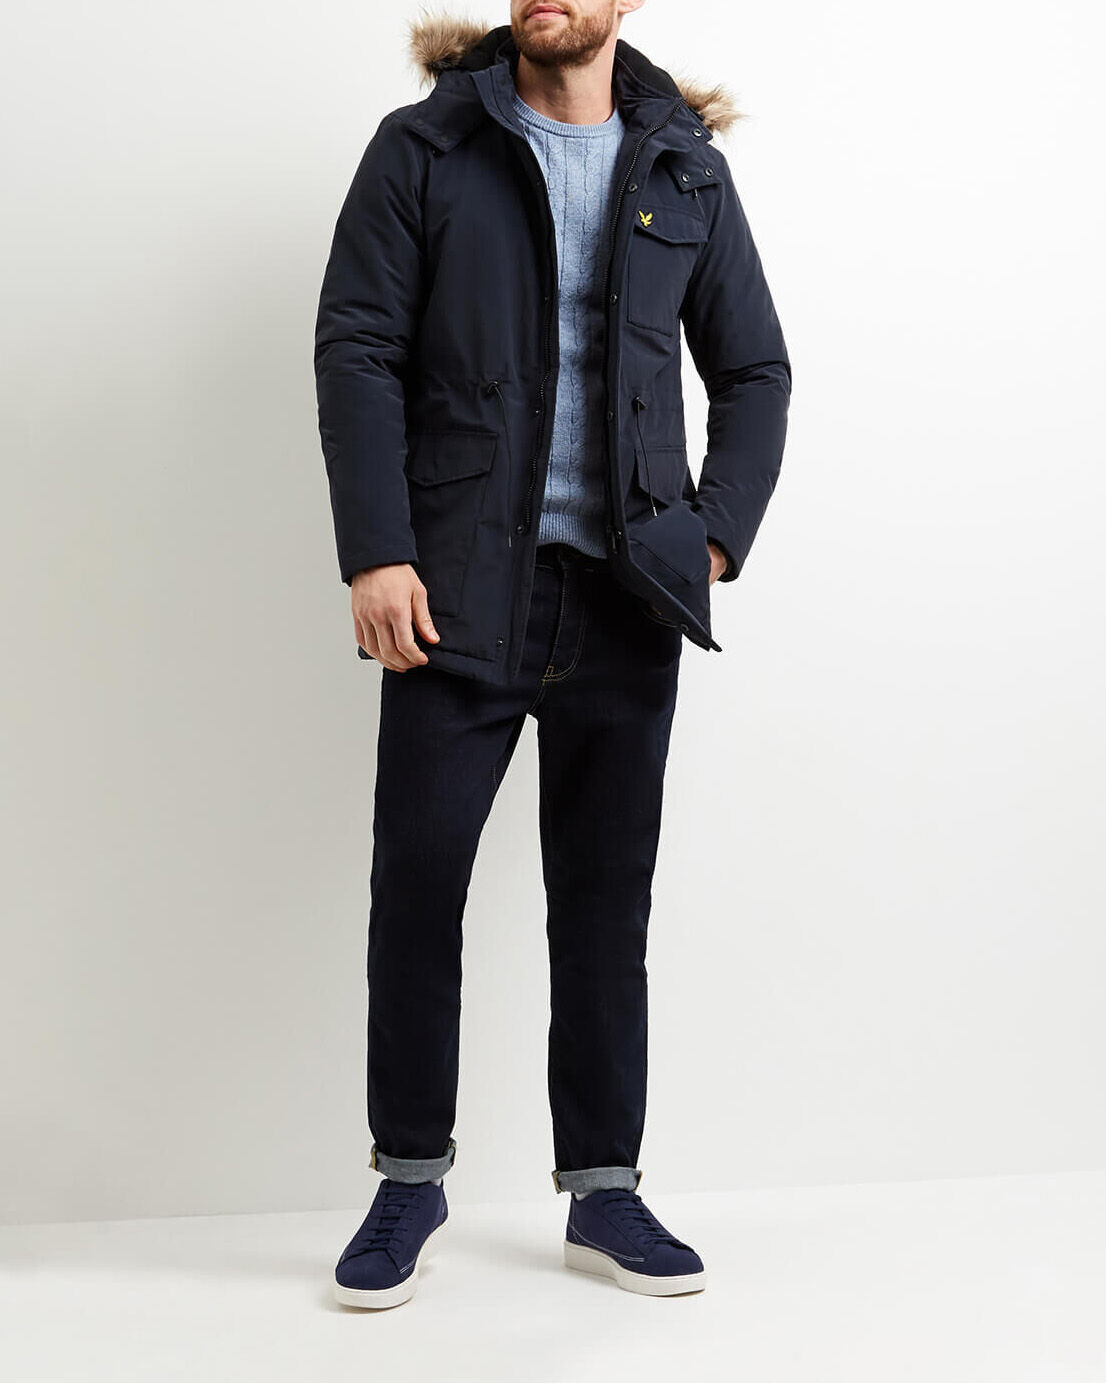 Lyle-and-Scott-Mens-Winterweight-Microfleece-Lined-Parka thumbnail 6